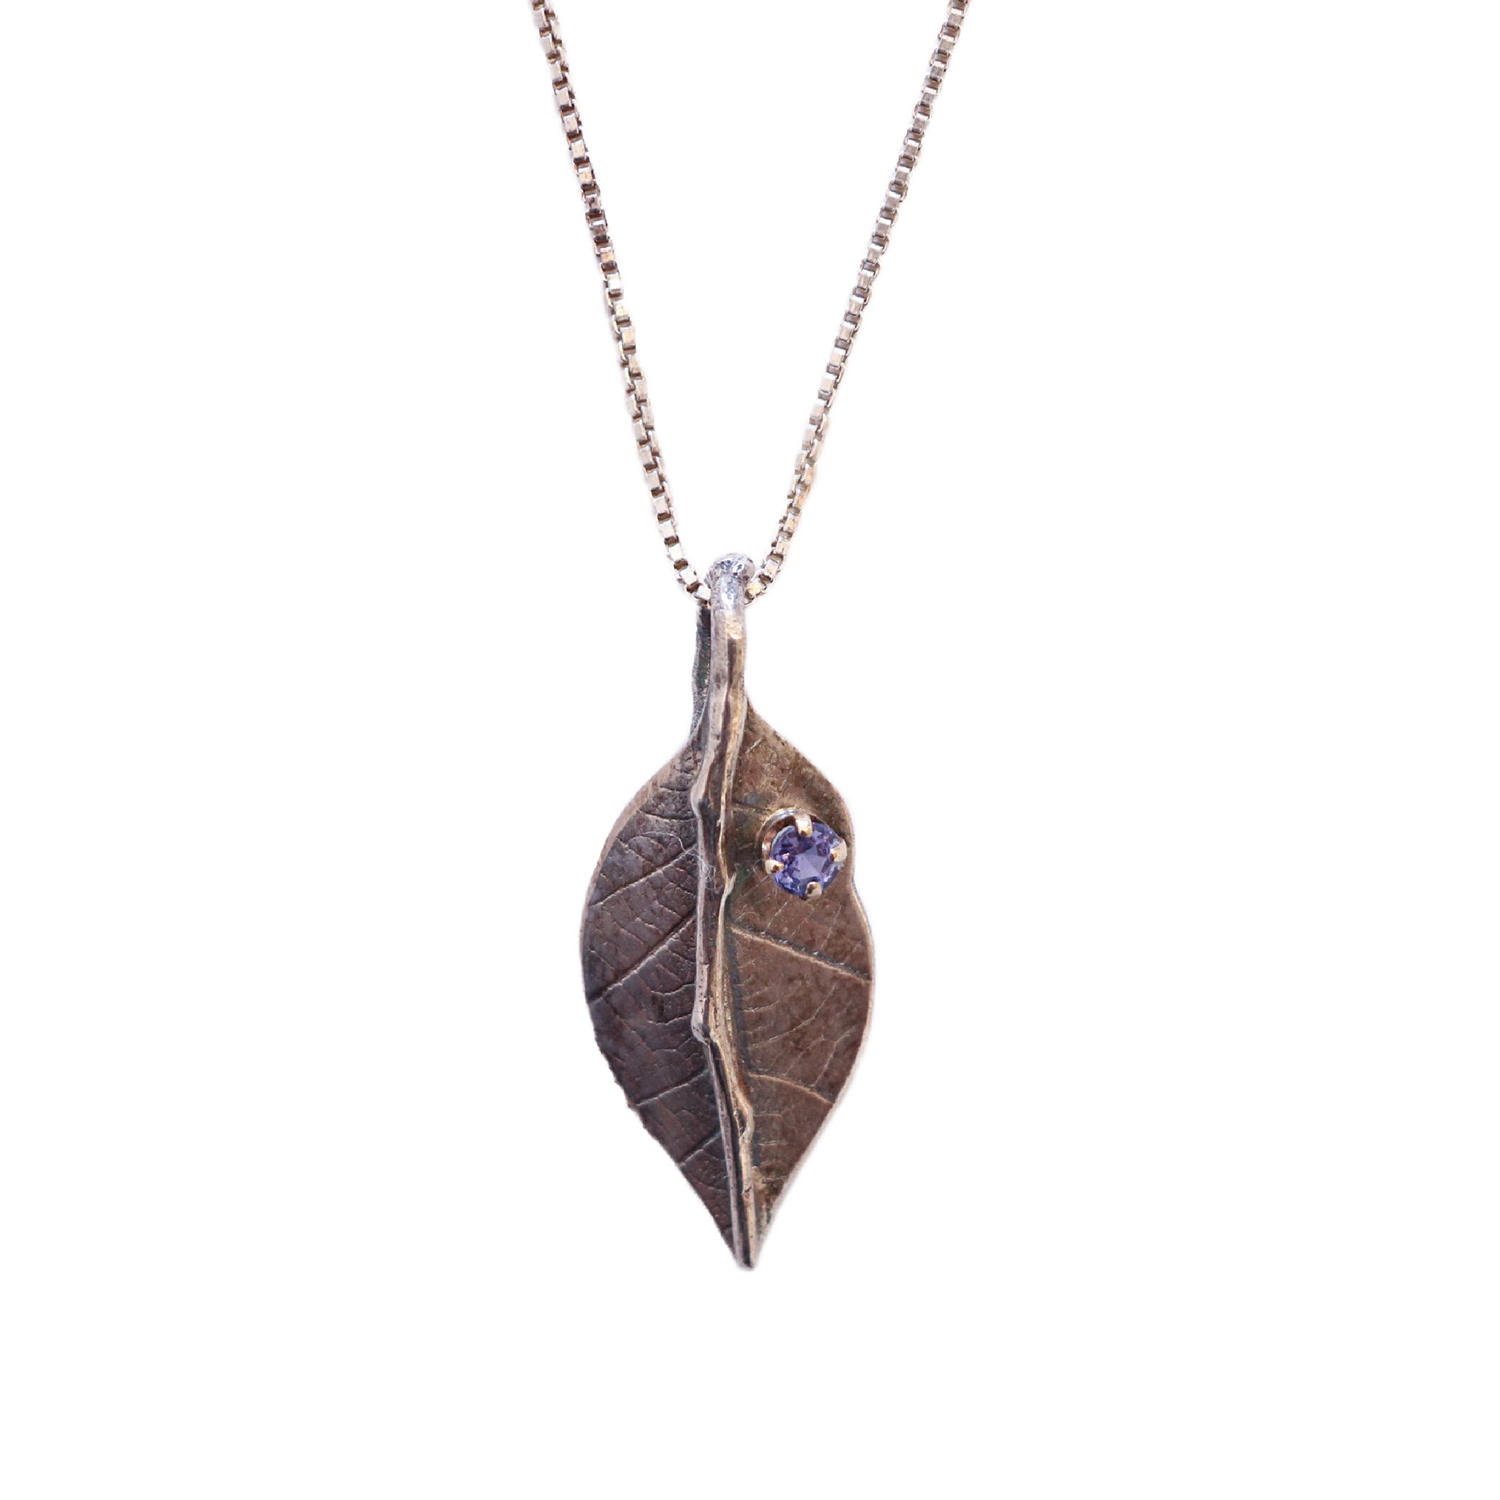 LEAF PENDANT NECKLACE WITH 14K TANZANITE, MICHELENE BERKEY